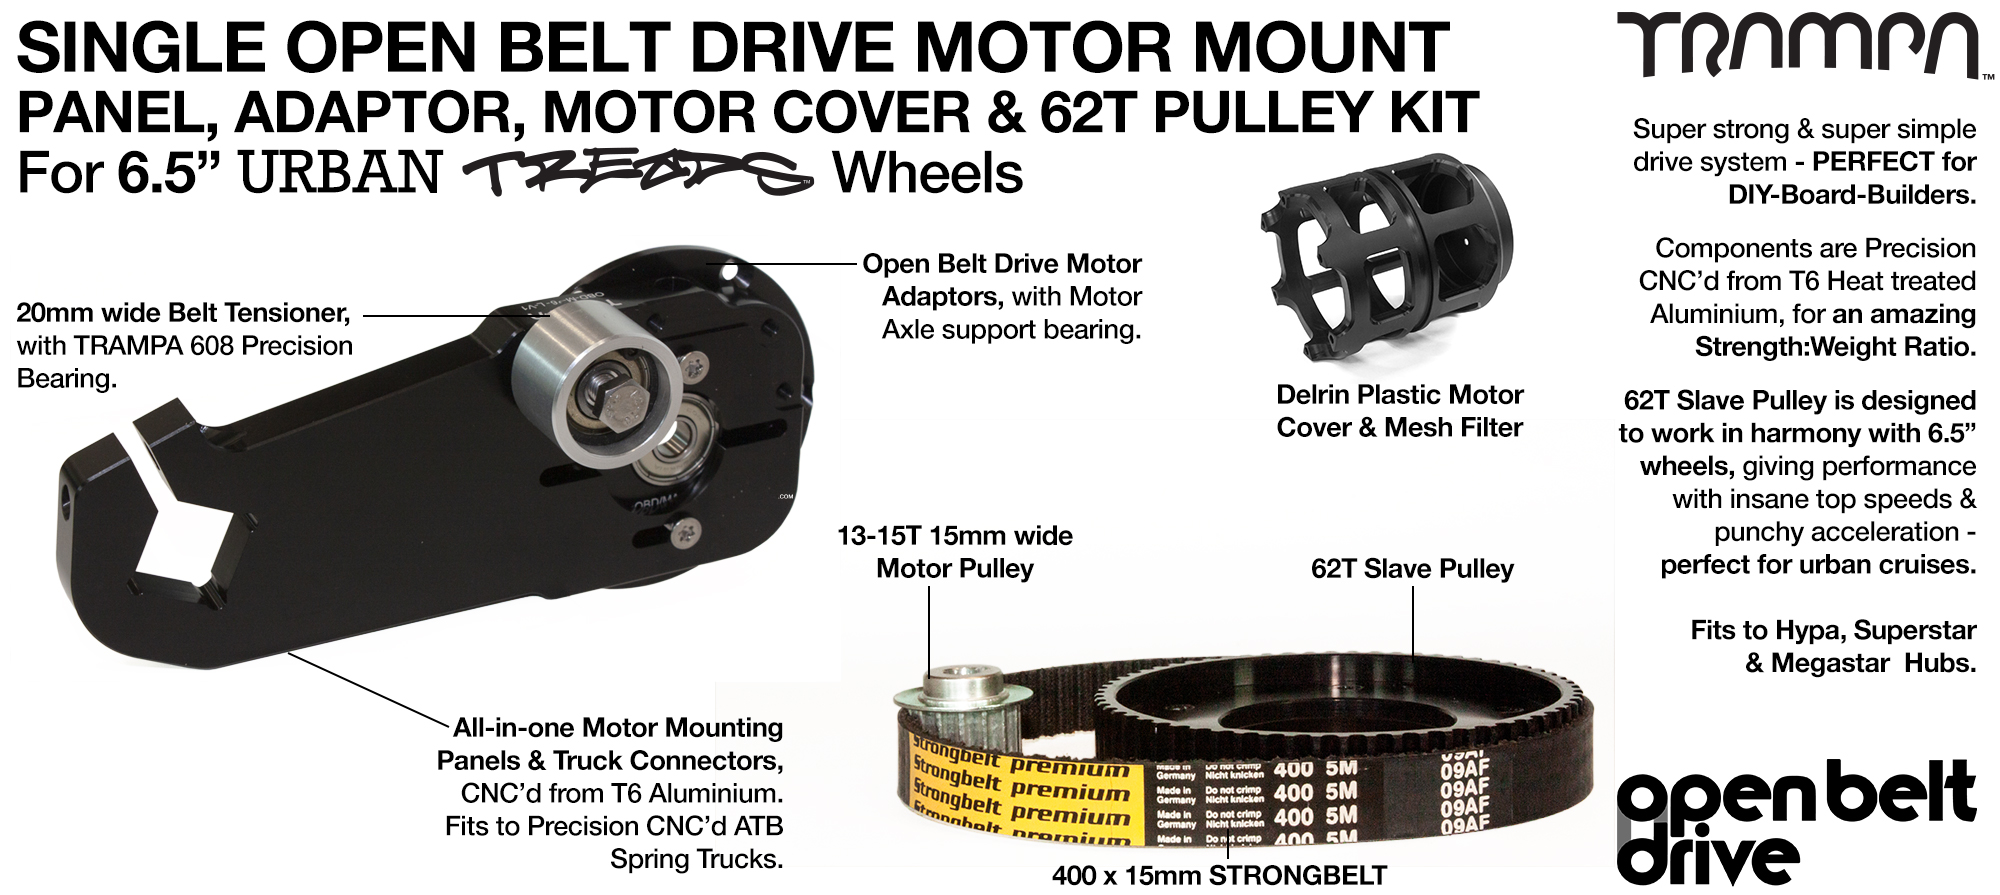 66T OBD Motor Mount with 62T Pulley kit & Motor Filters - SINGLE